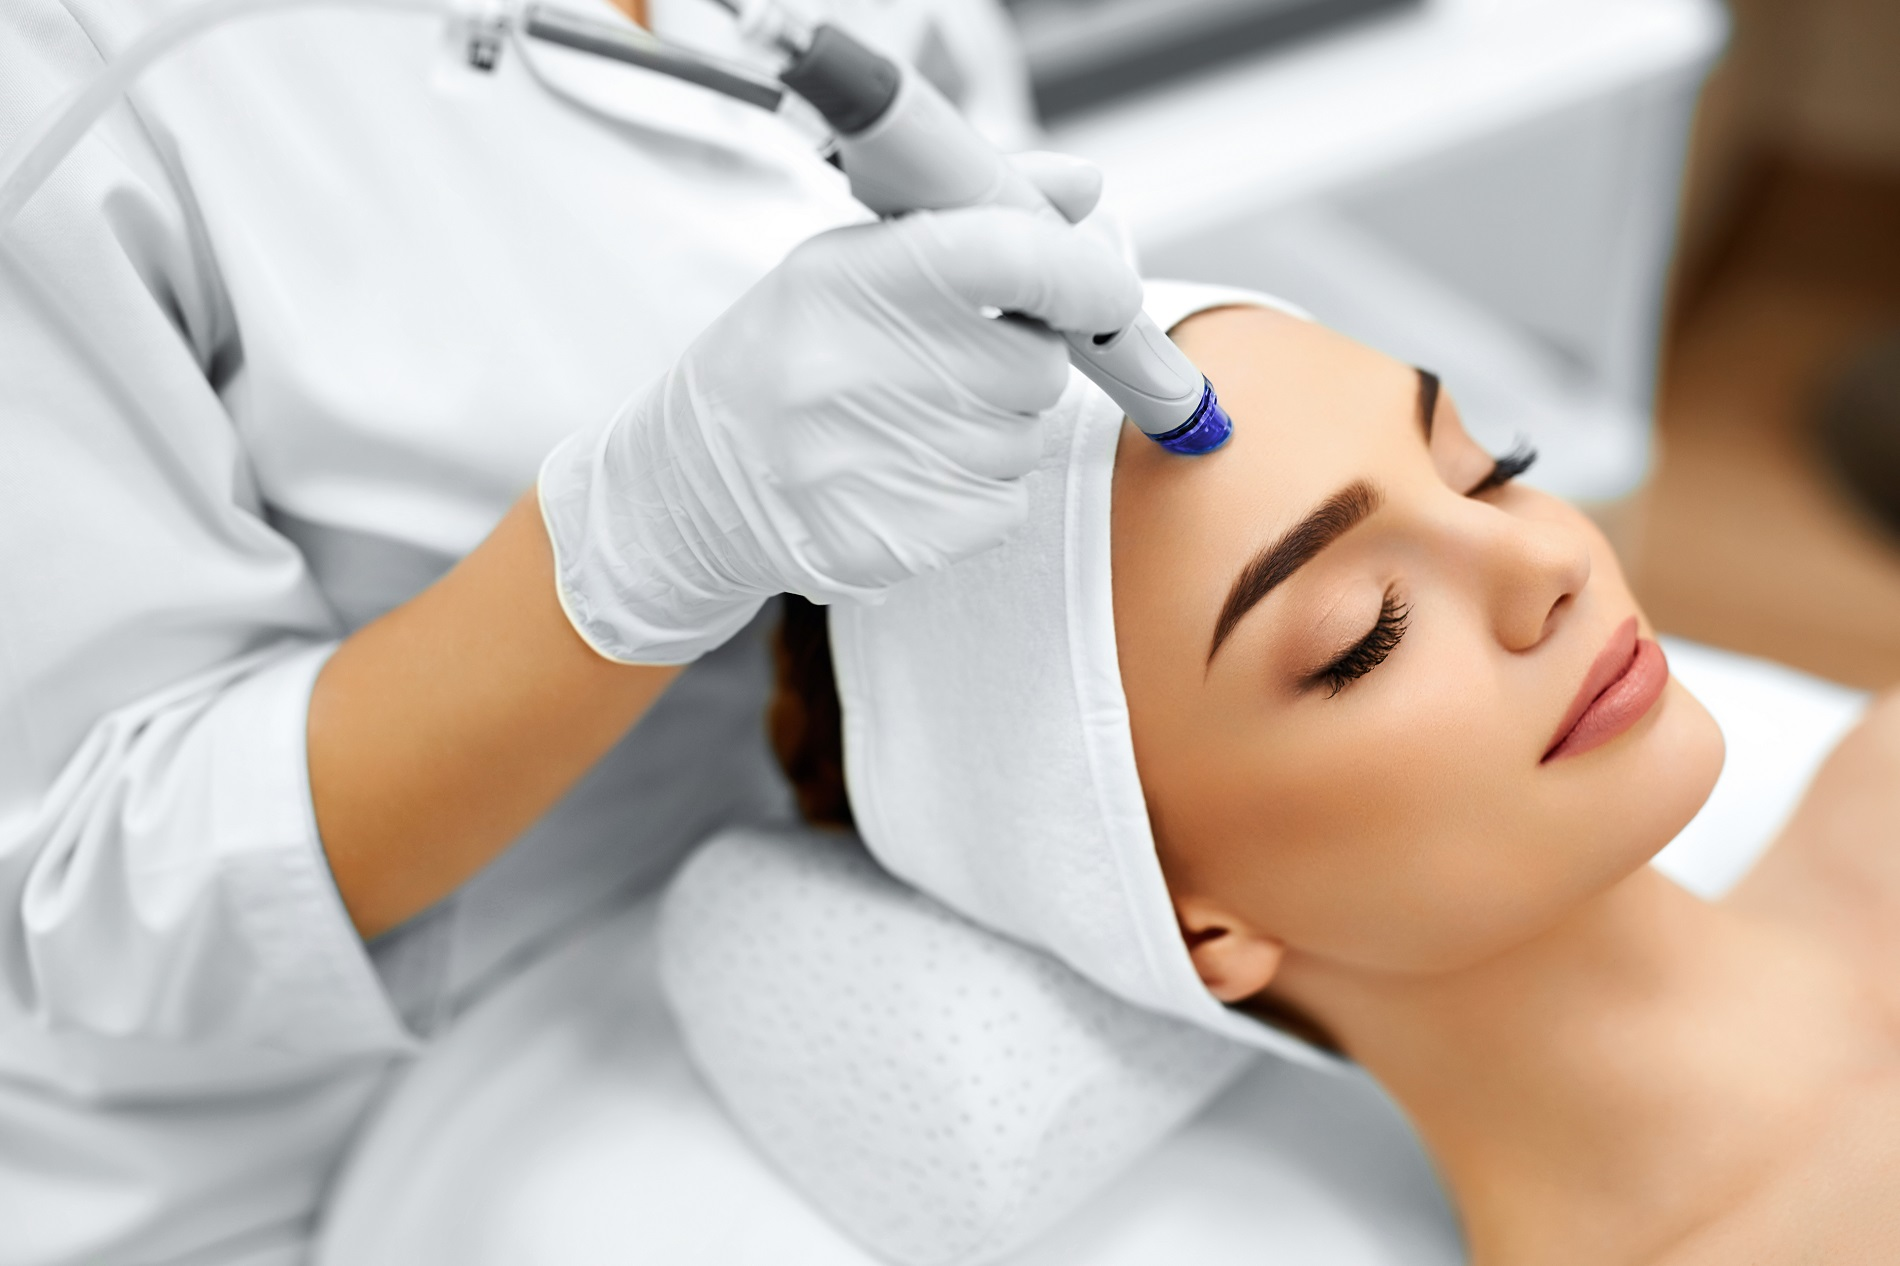 With laser facial cleaning